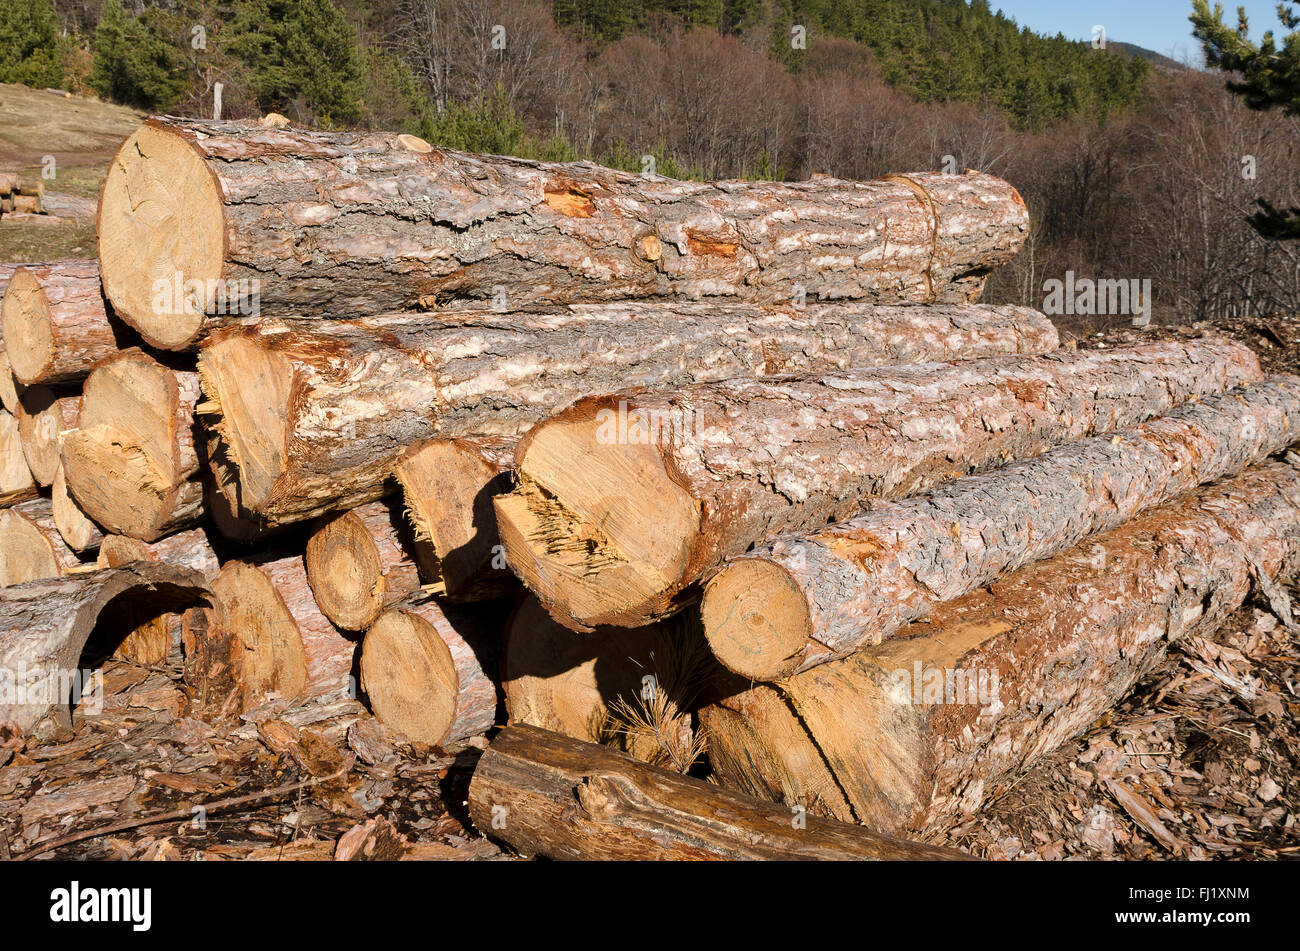 Dry trees and stack of coniferous timber in a mountain - Stock Image